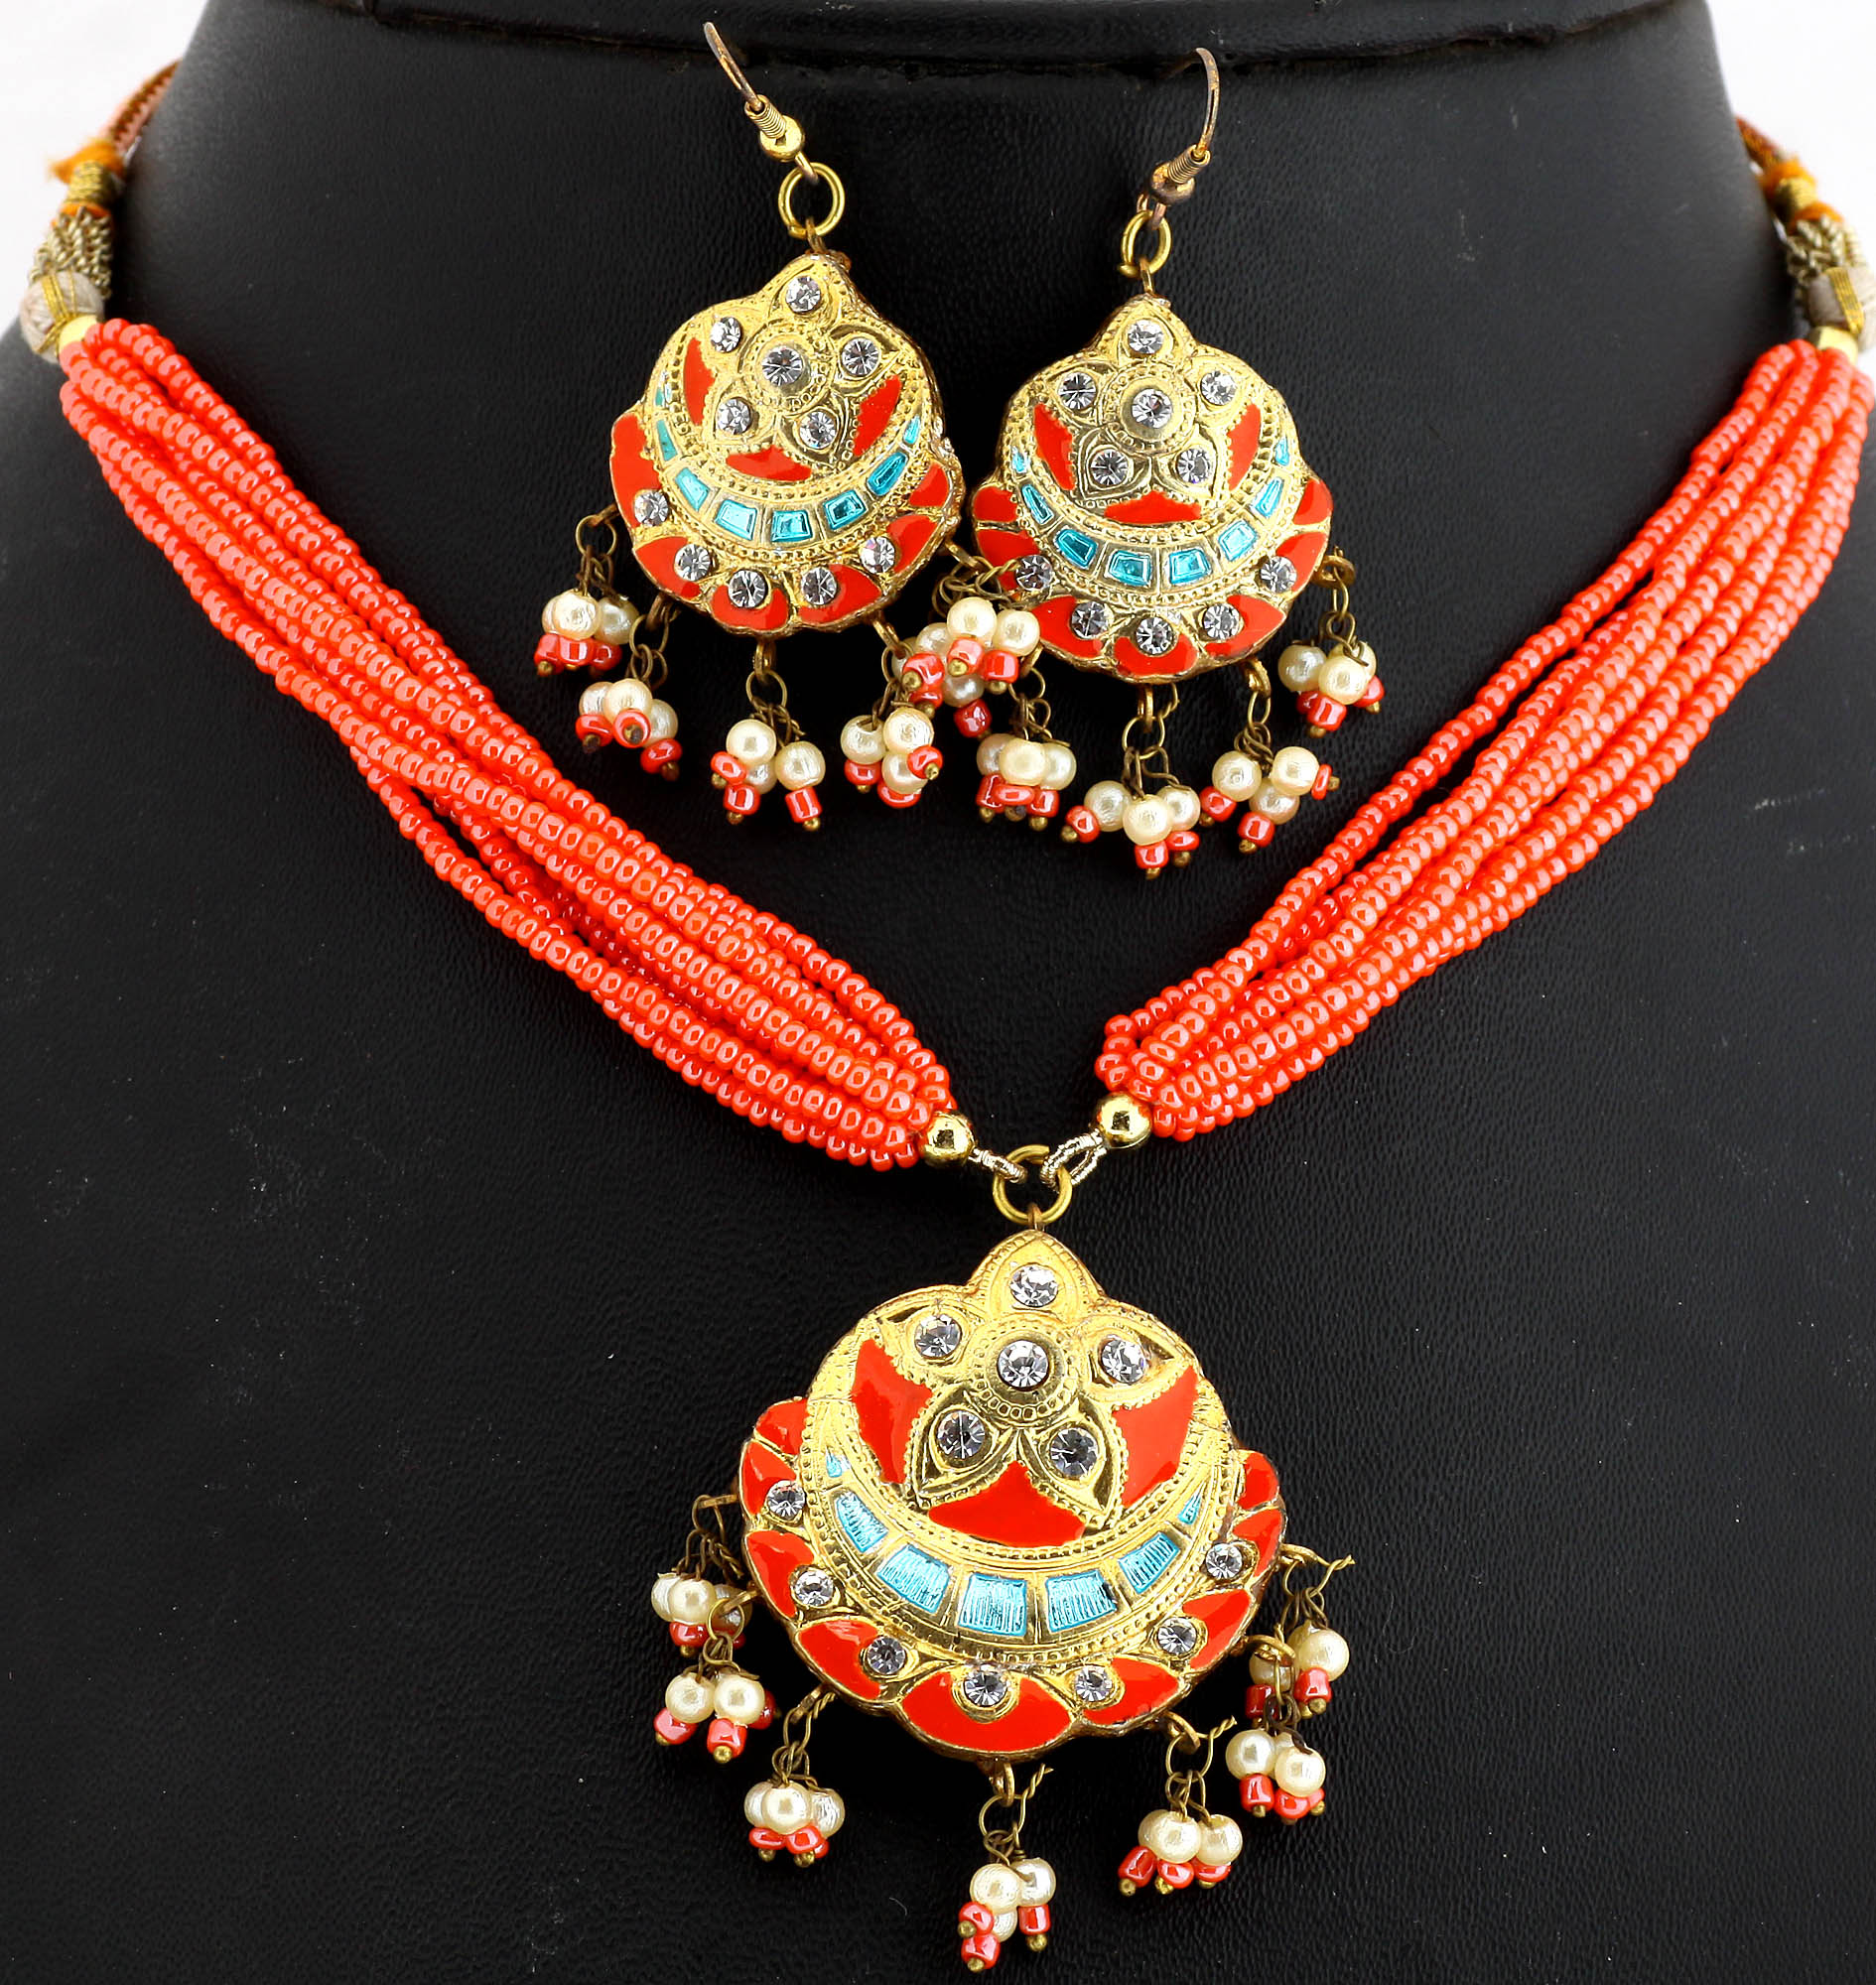 Coral Color Necklace And Earrings Set With Golden Ascent